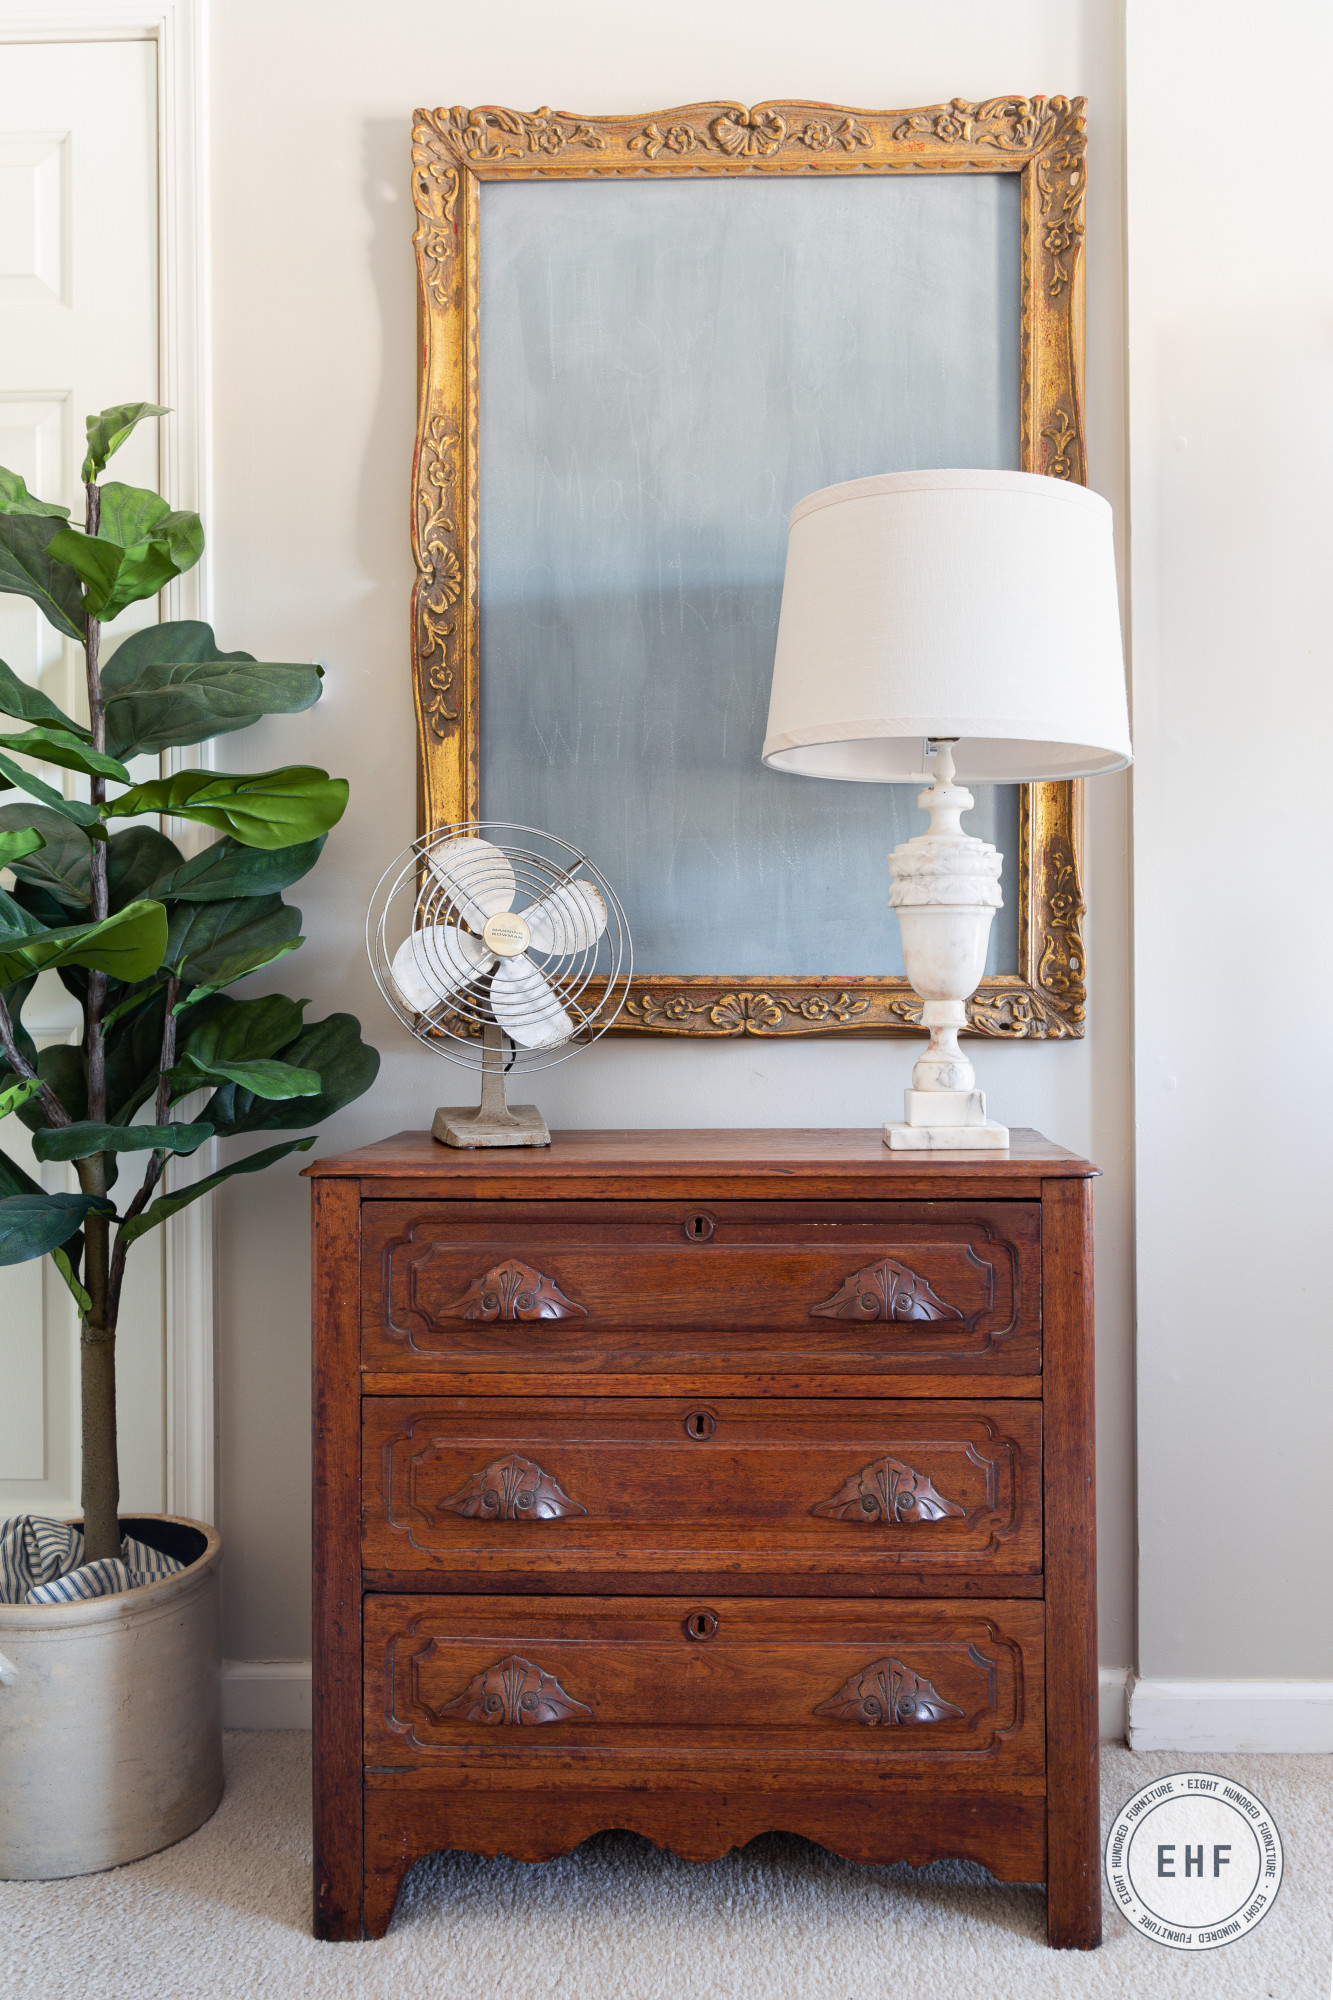 Antique victorian chest of drawers with alabaster lamp, vintage fan, fiddle leaf fig tree and wall chalkboard in Aviary by Miss Mustard Seed's Milk Paint